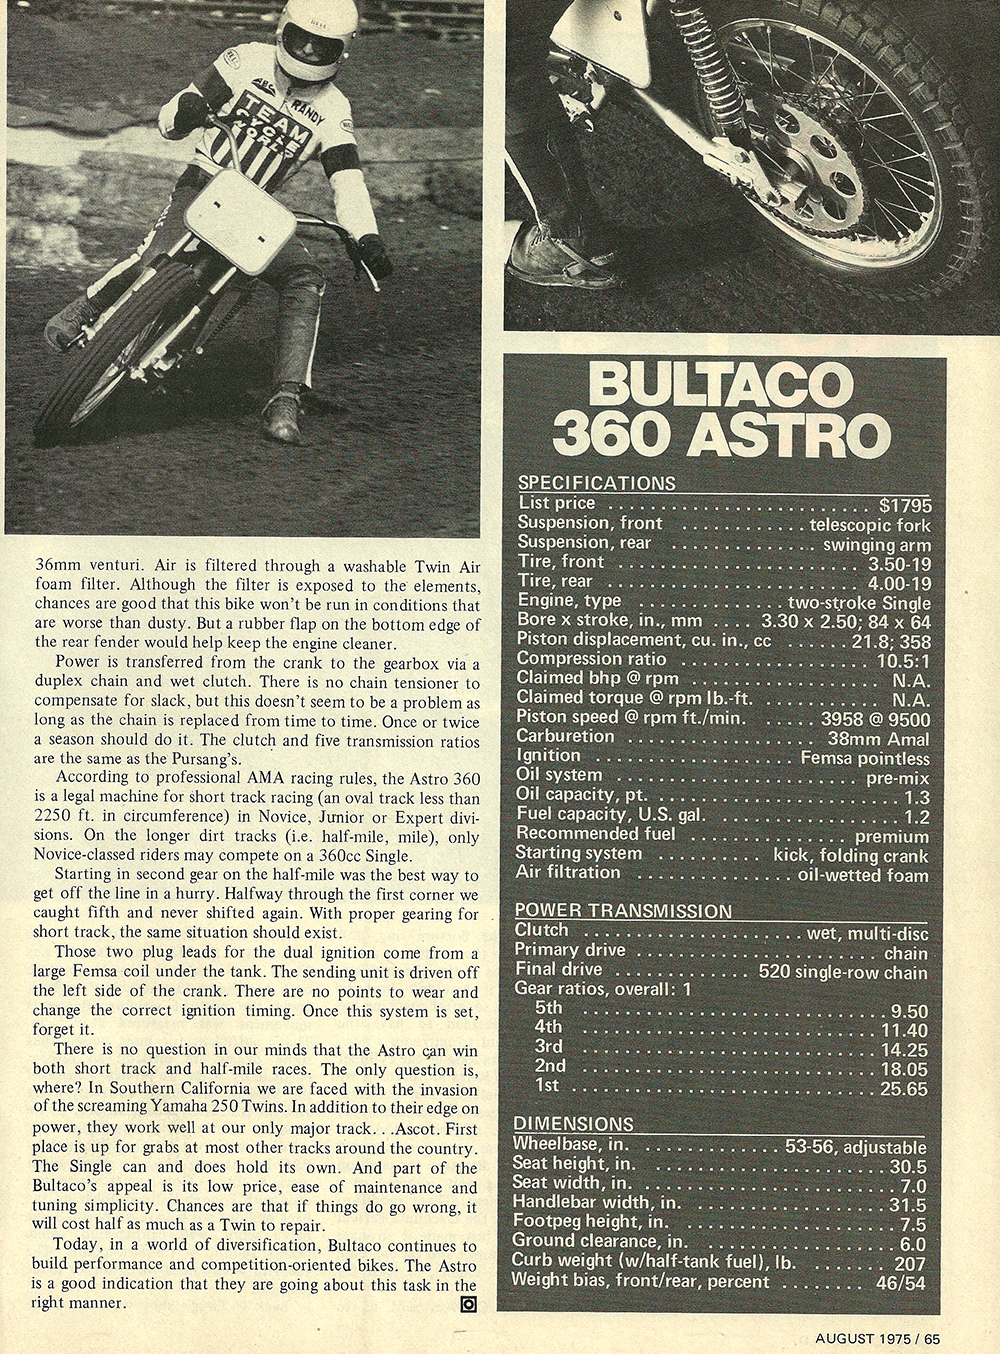 1975 Bultaco 360 Astro road test 06.jpg